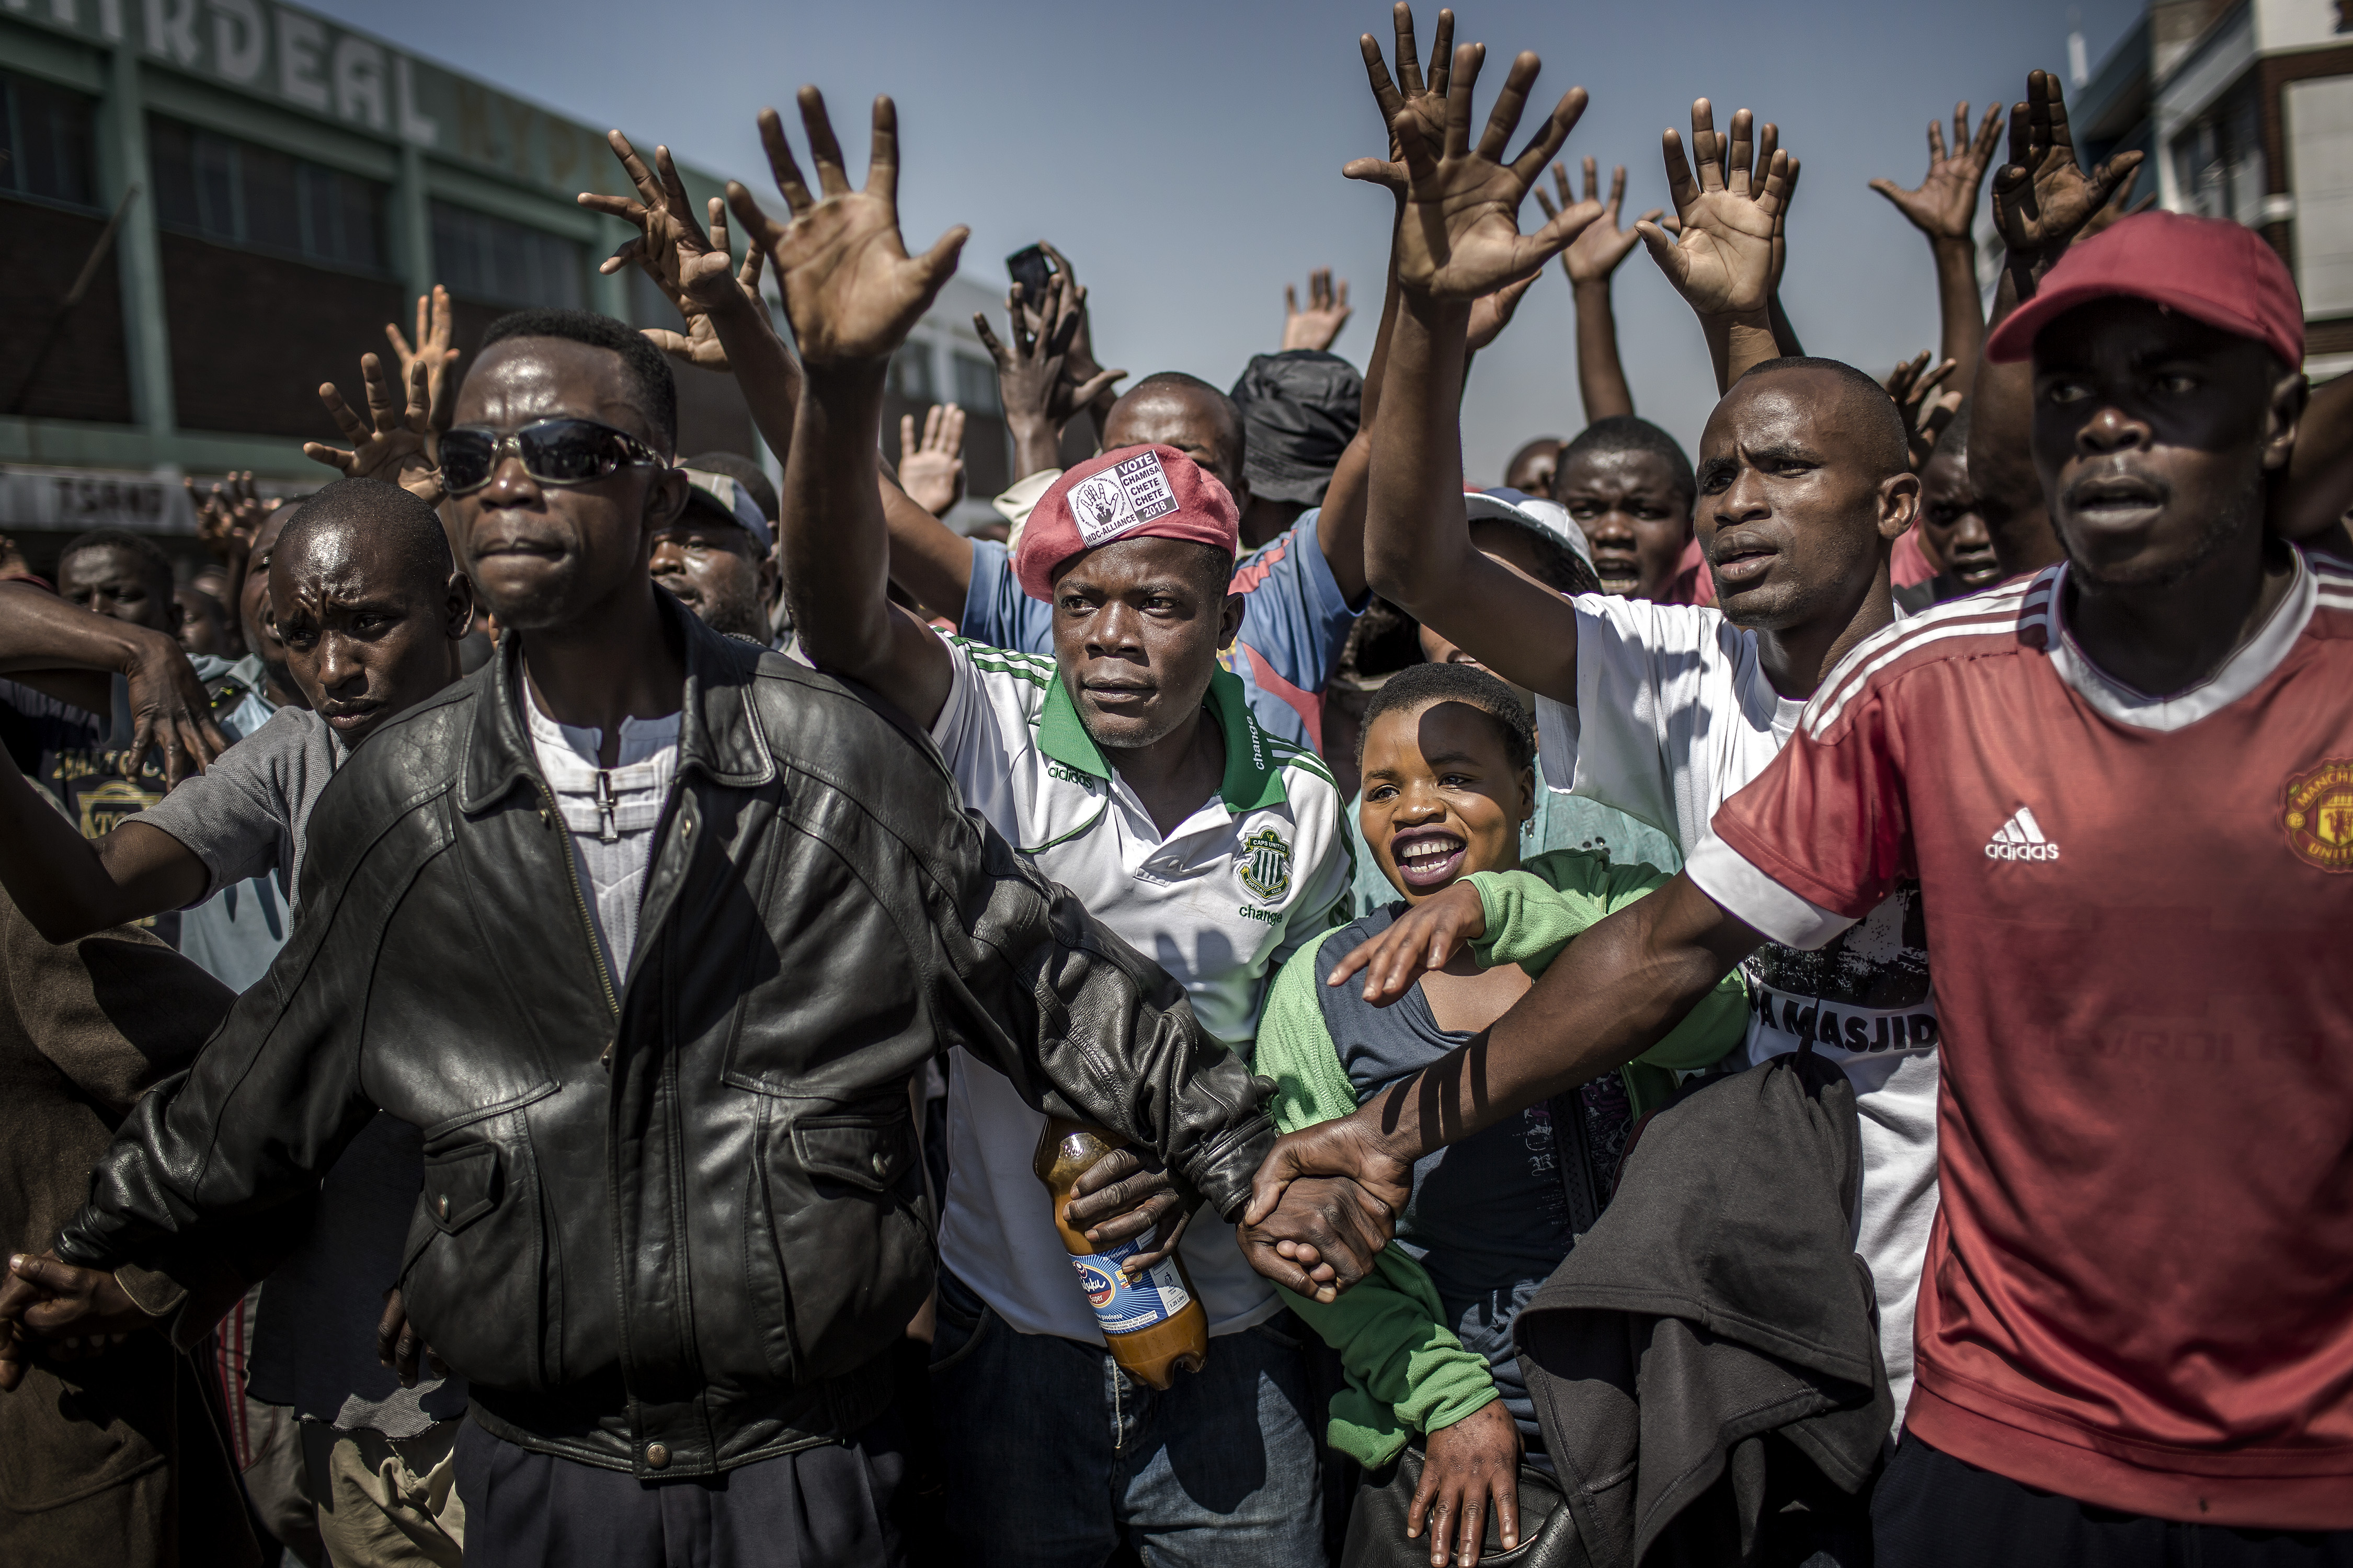 Supporters of the opposition party Movement for Democratic Change (MDC), protest against alleged election fraud in Harare, Zimbabwe on Aug. 1, 2018.